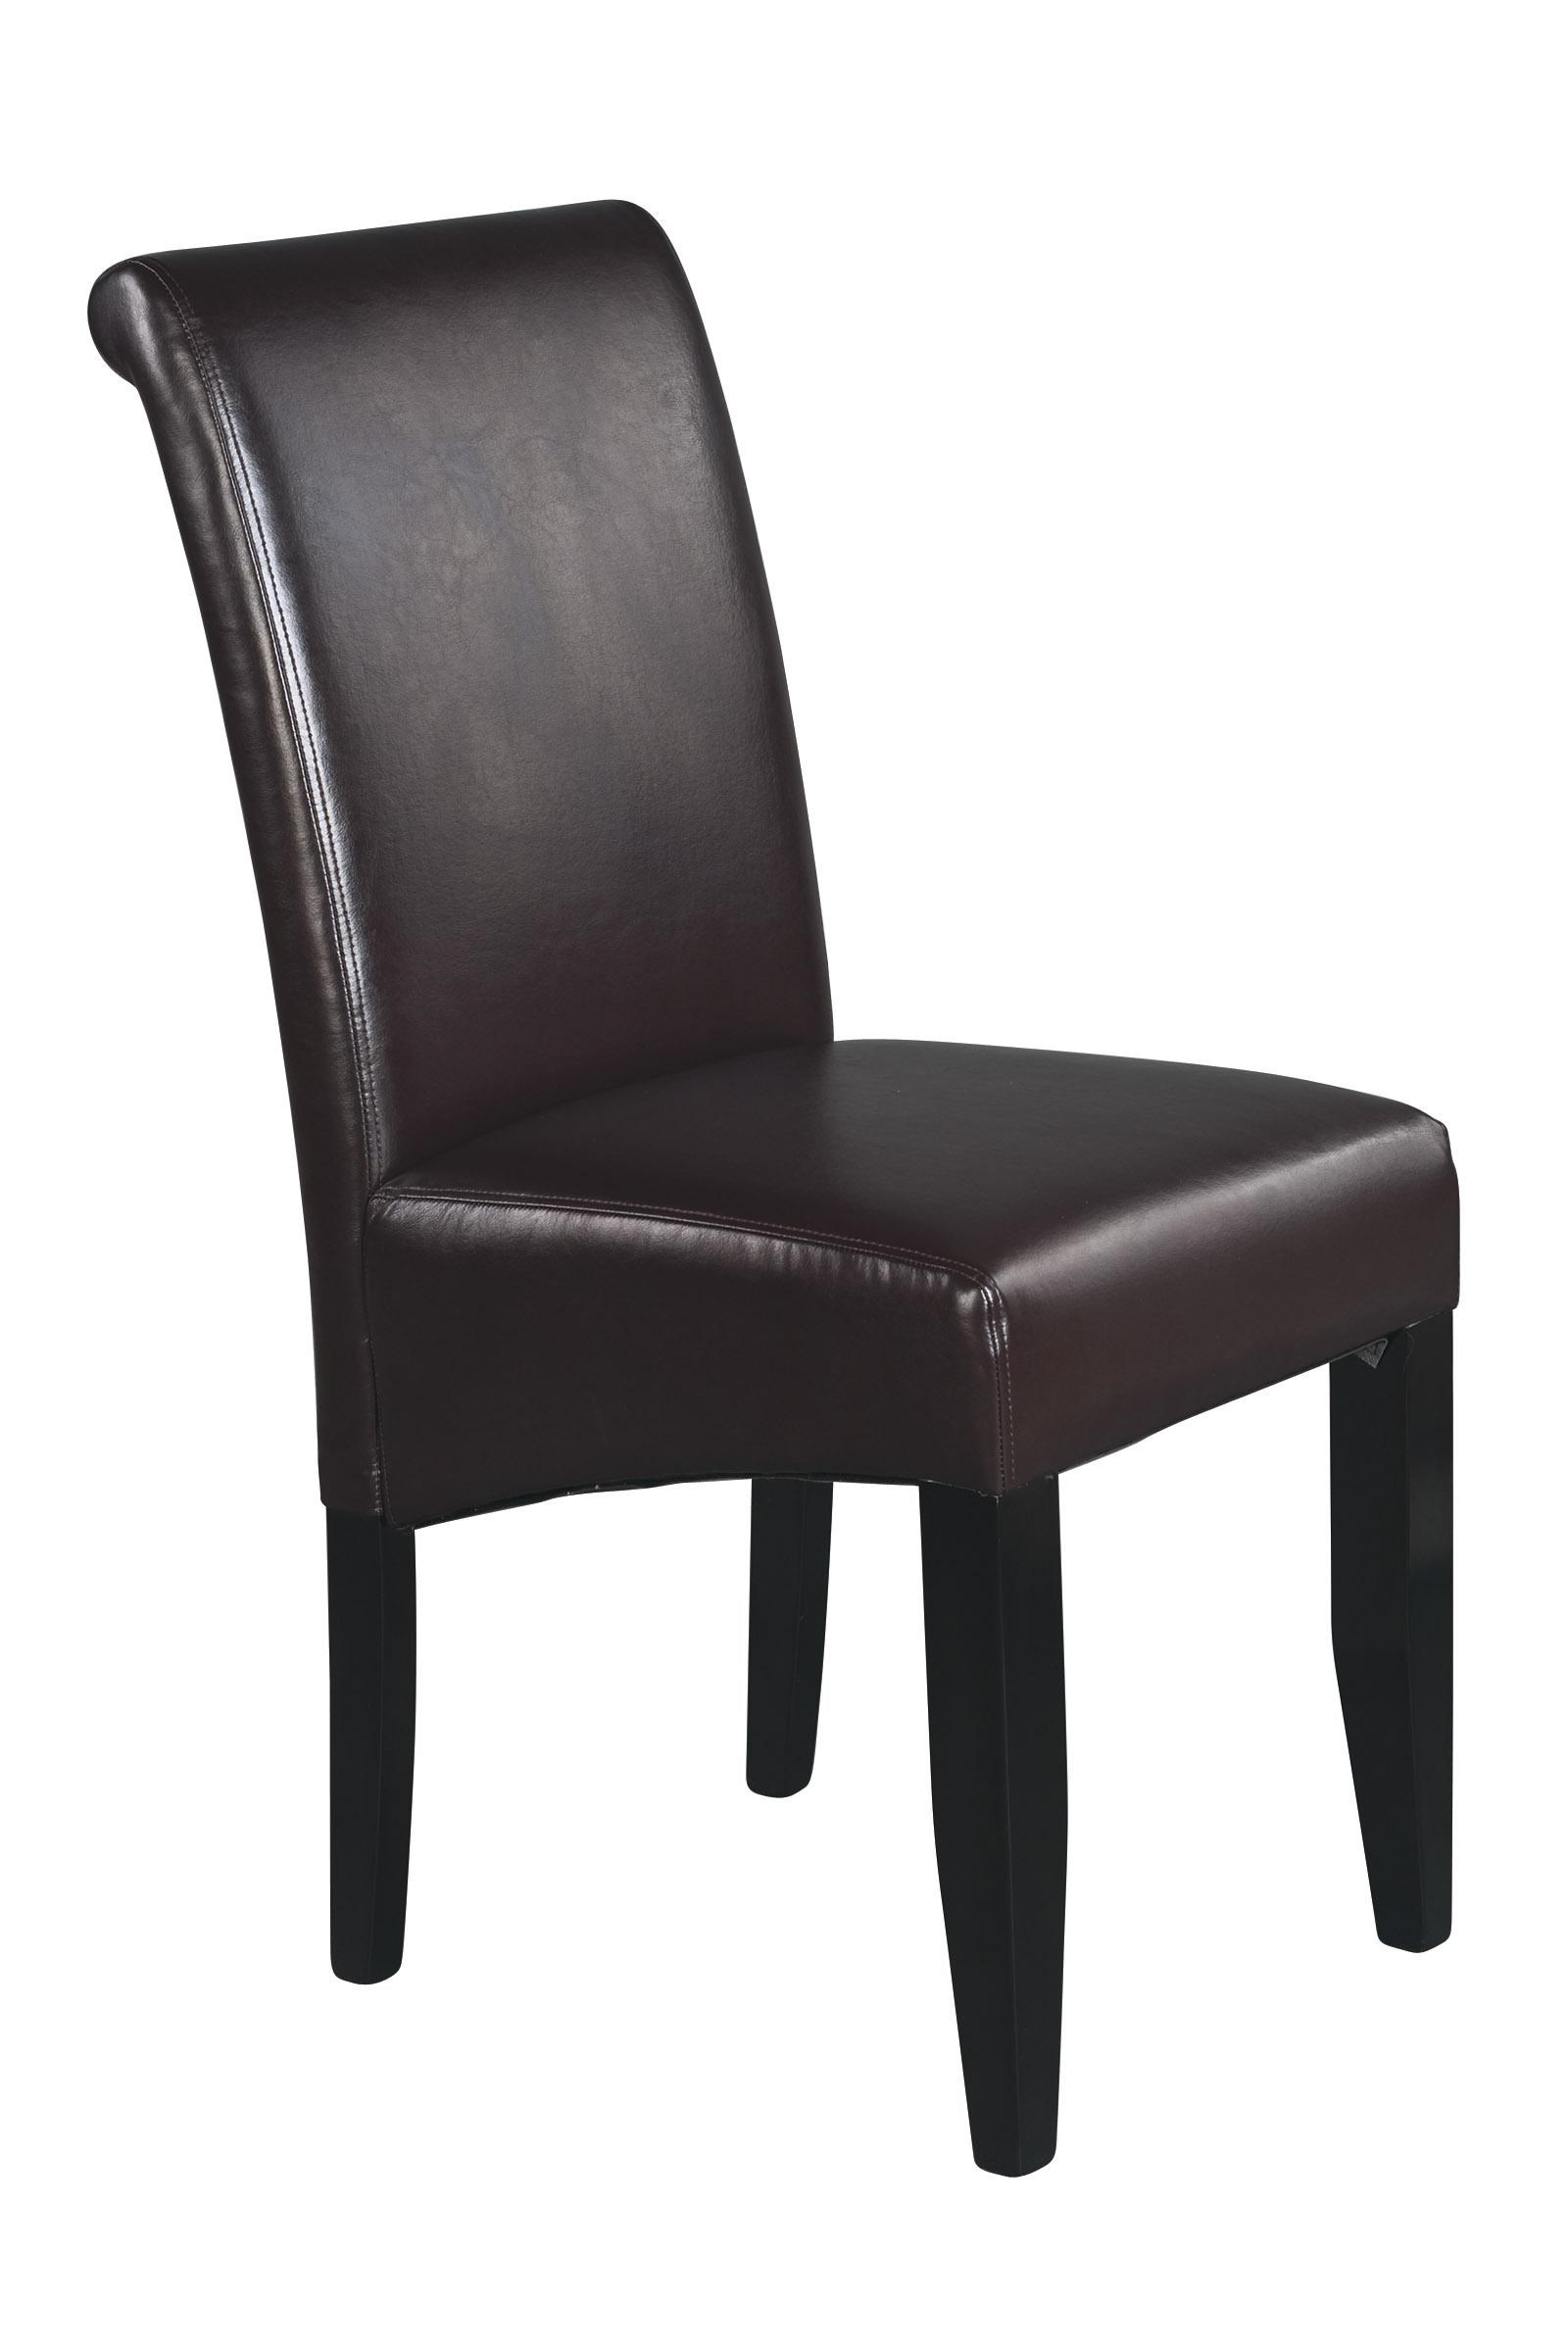 Office Star Parson Chairs Espresso Finish Eco Leather Side Chair